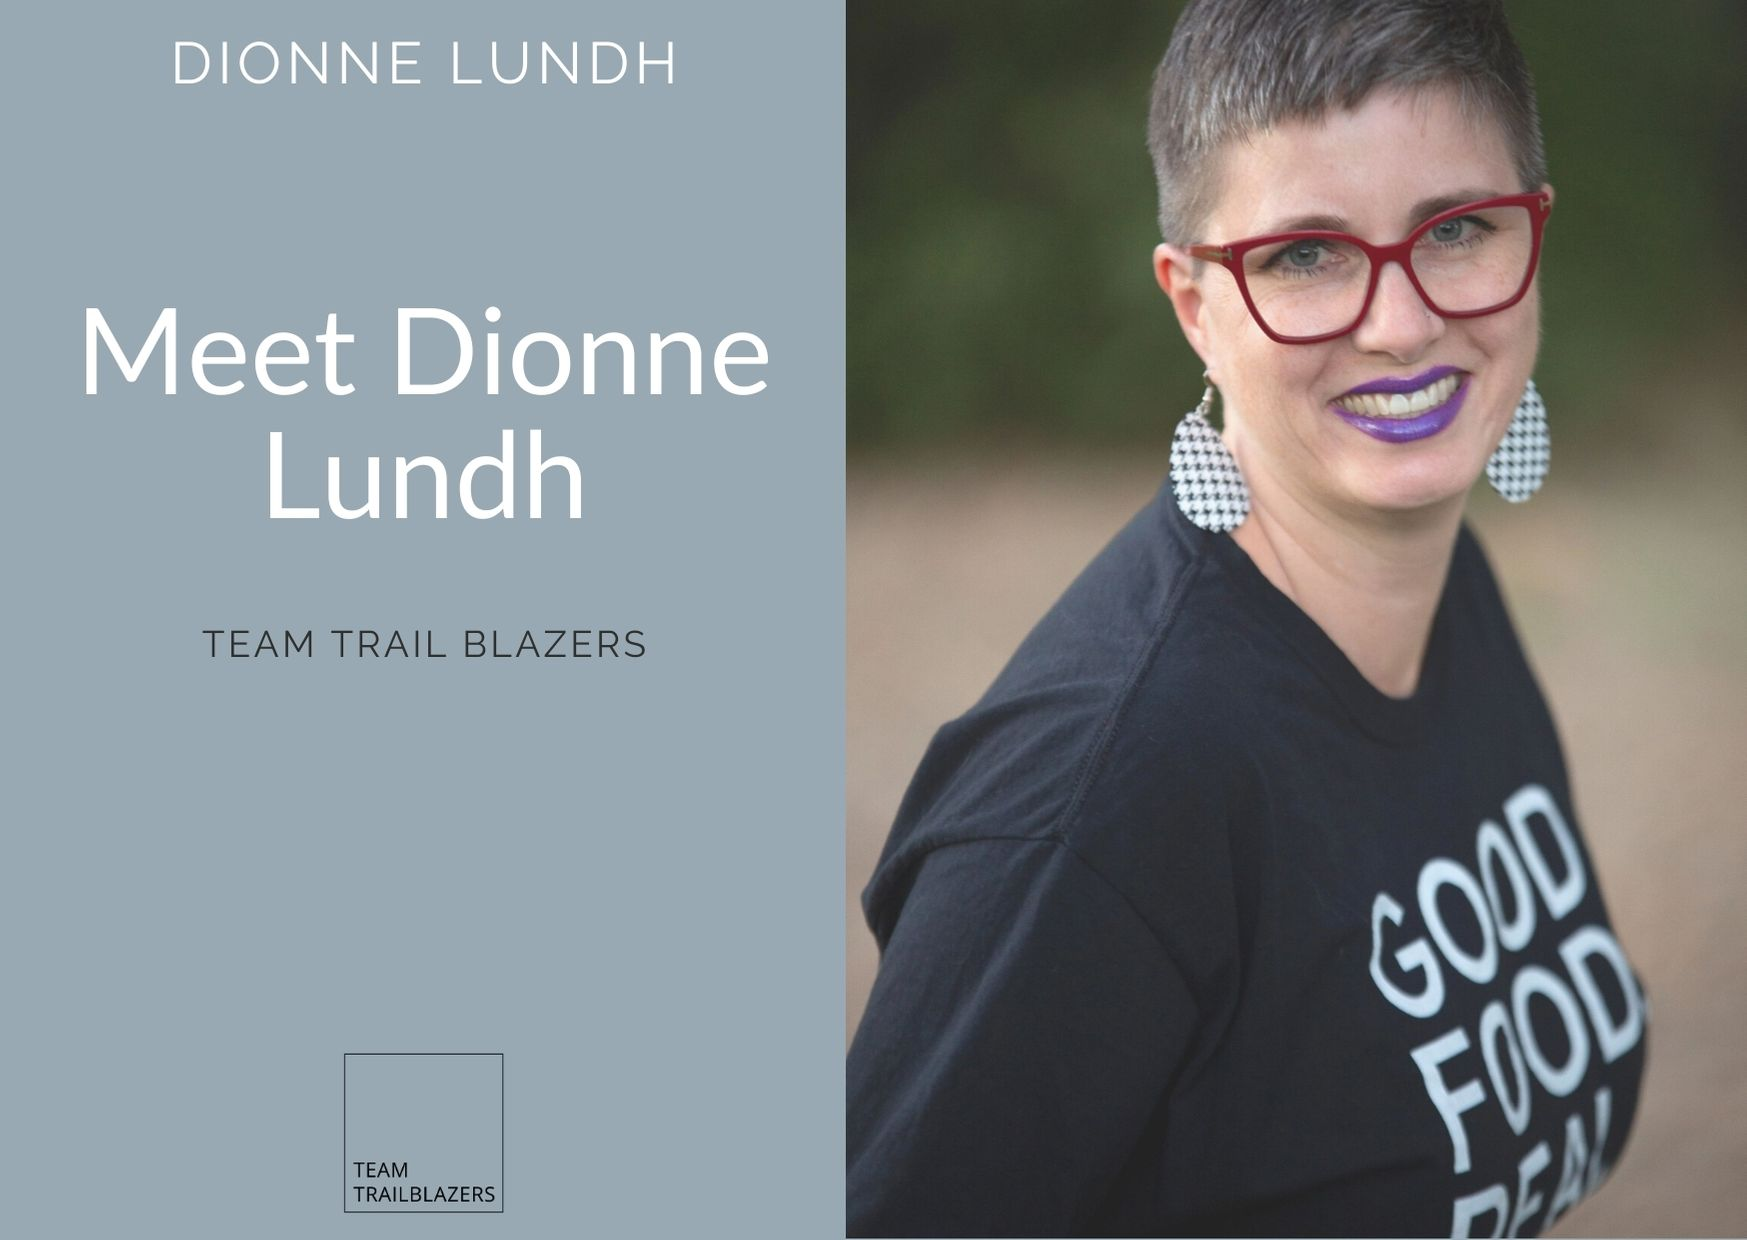 Get to know Dionne Lundh